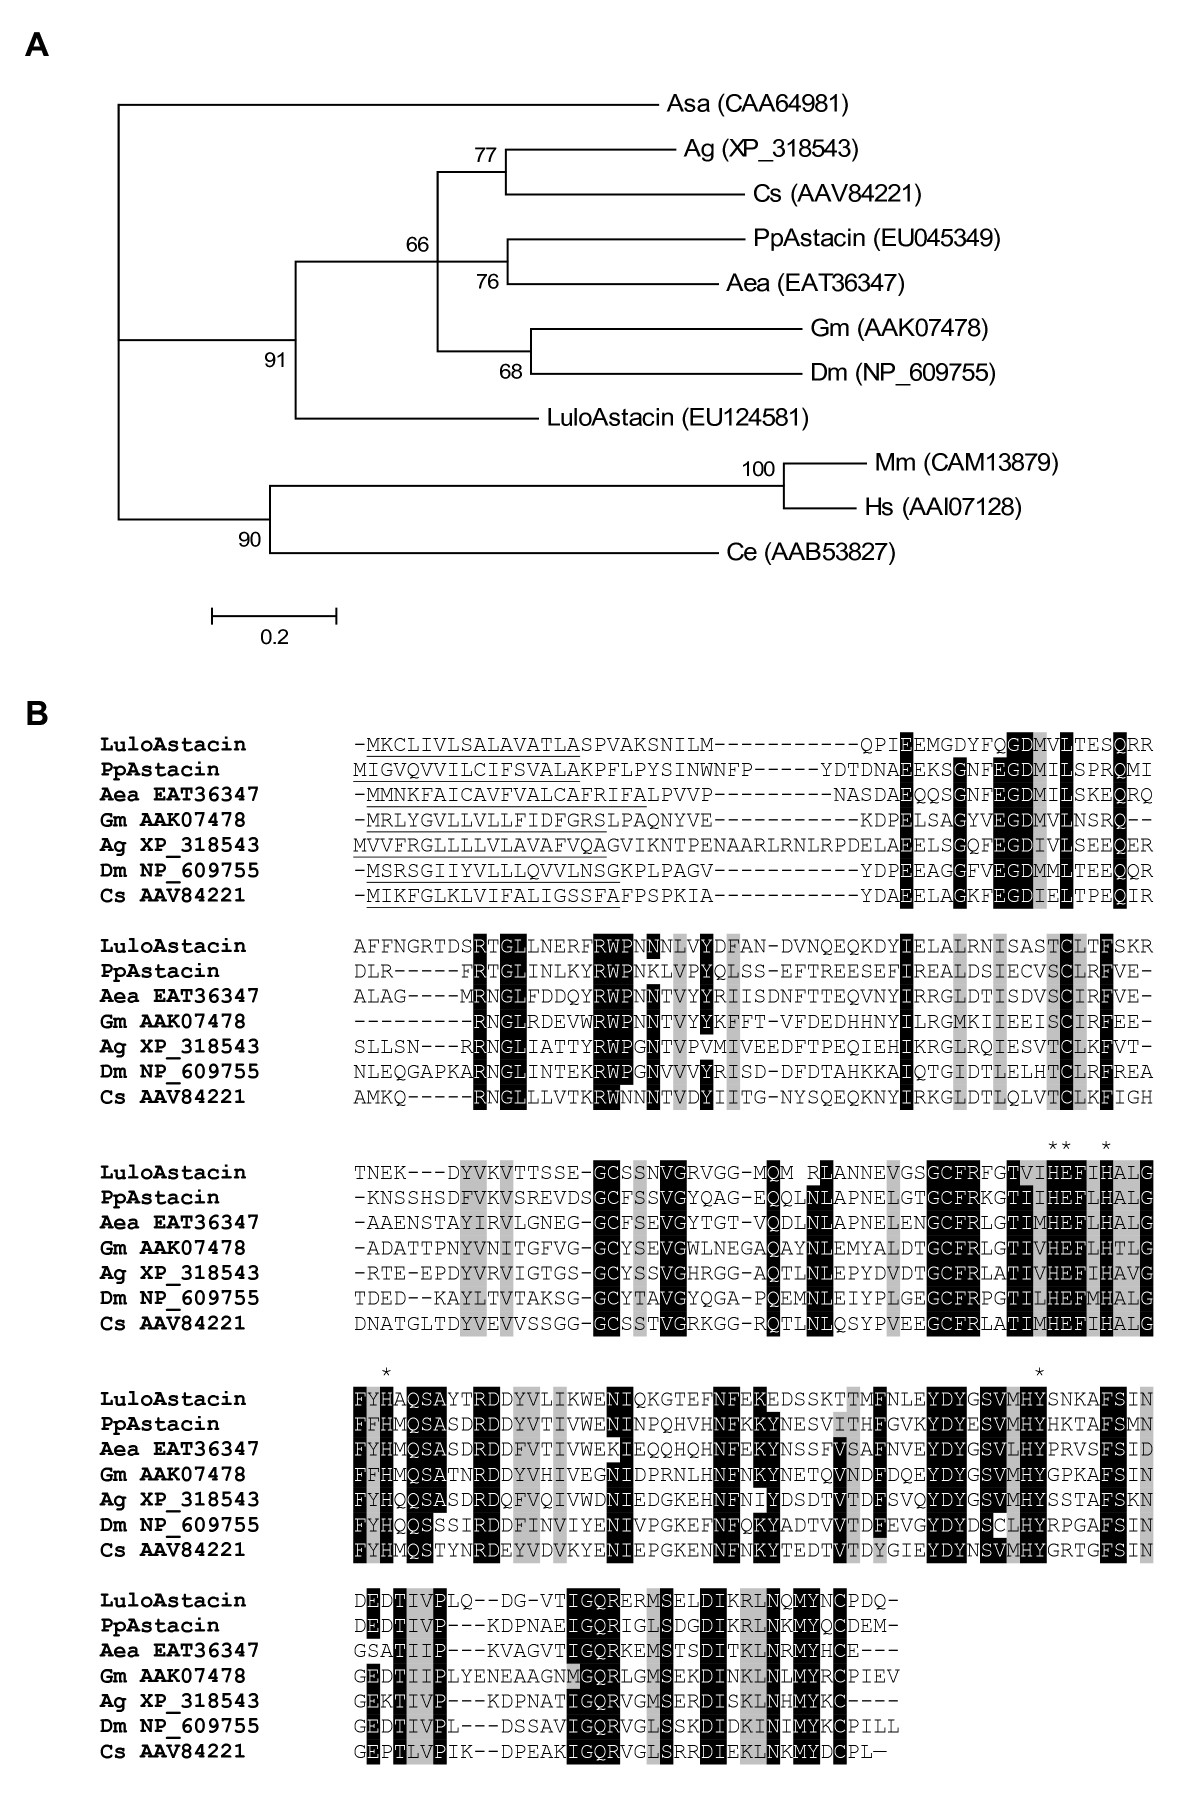 https://static-content.springer.com/image/art%3A10.1186%2F1471-2164-9-15/MediaObjects/12864_2007_Article_1209_Fig5_HTML.jpg